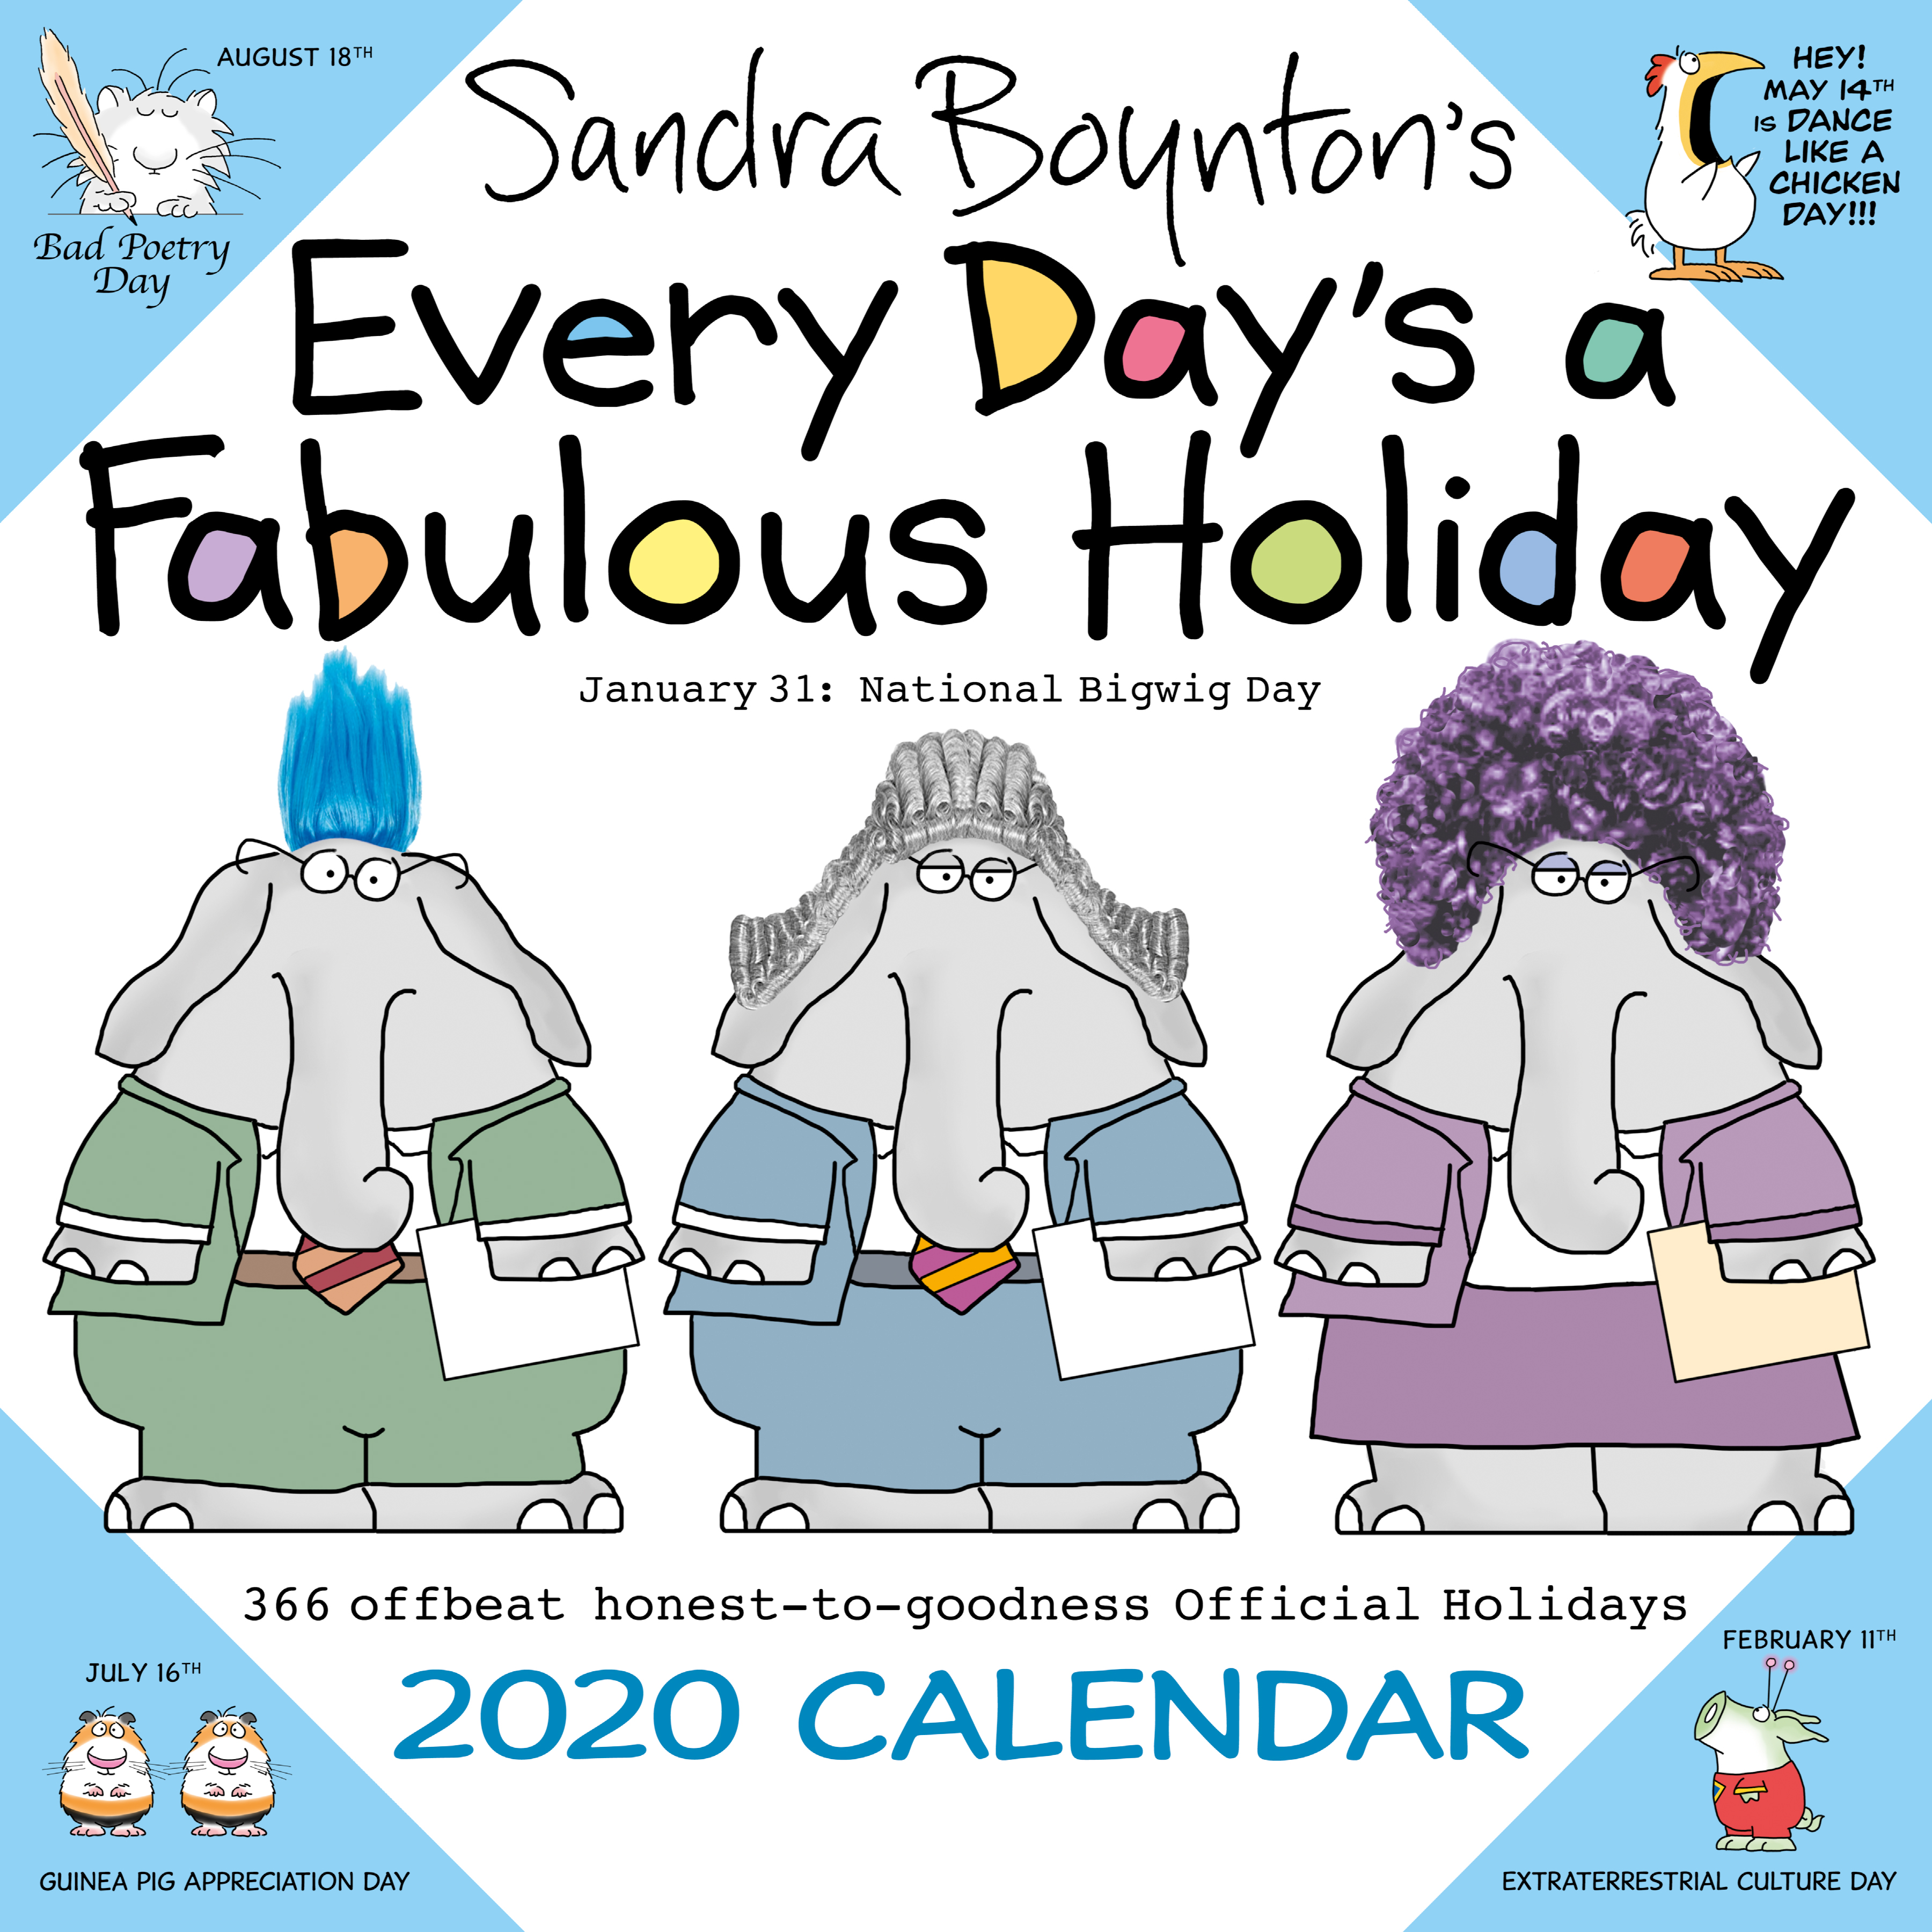 Appreciation Day Calendar 2020 Sandra Boynton's Every Day's a Fabulous Holiday 2020 Wall Calendar